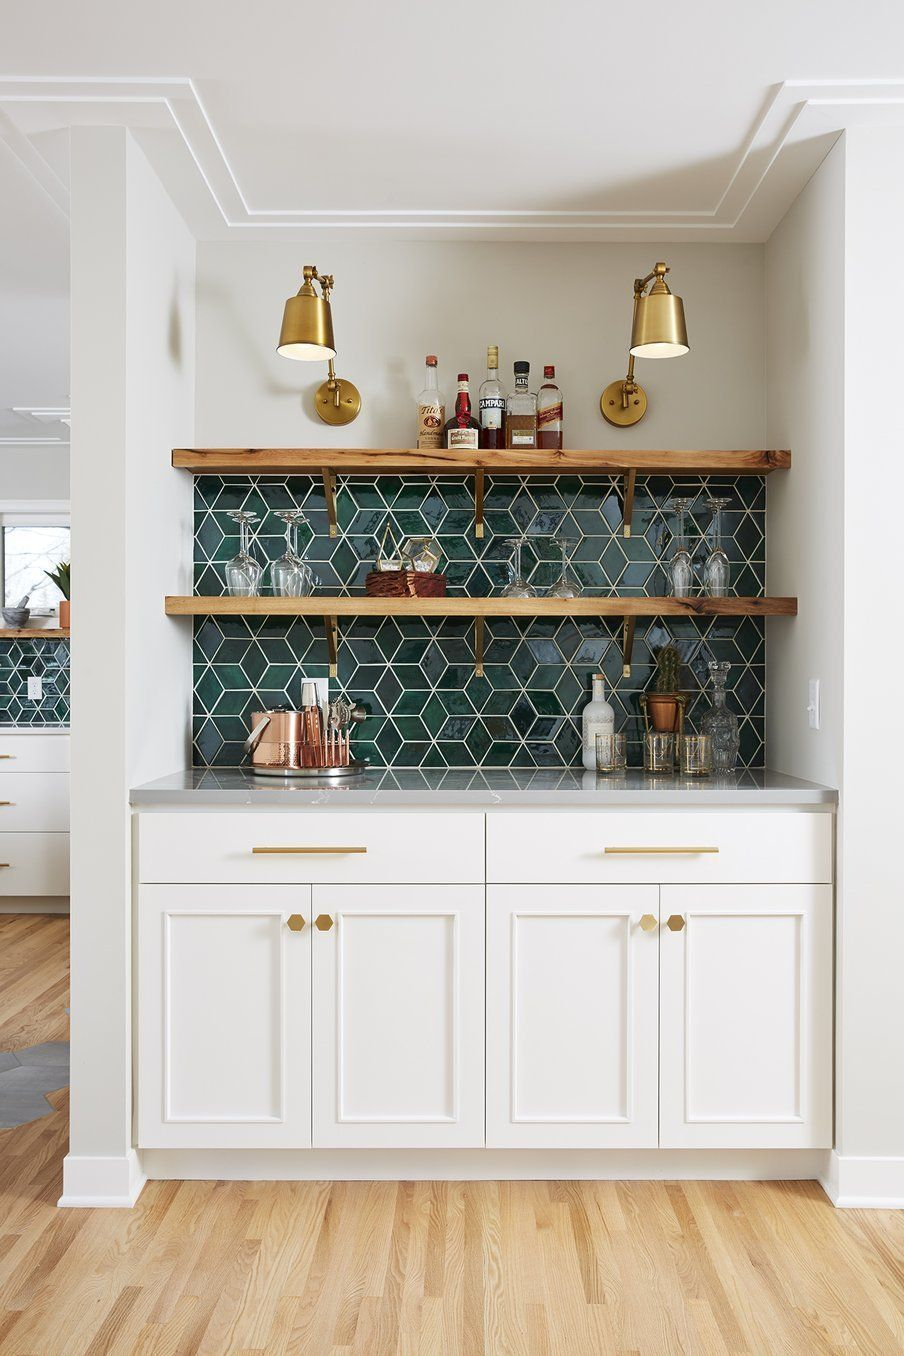 Photo of Home Interior Bauernhaus Dazzling Diamond Kitchen Backsplash # Backsplash #dazzling #diamond #kitchen